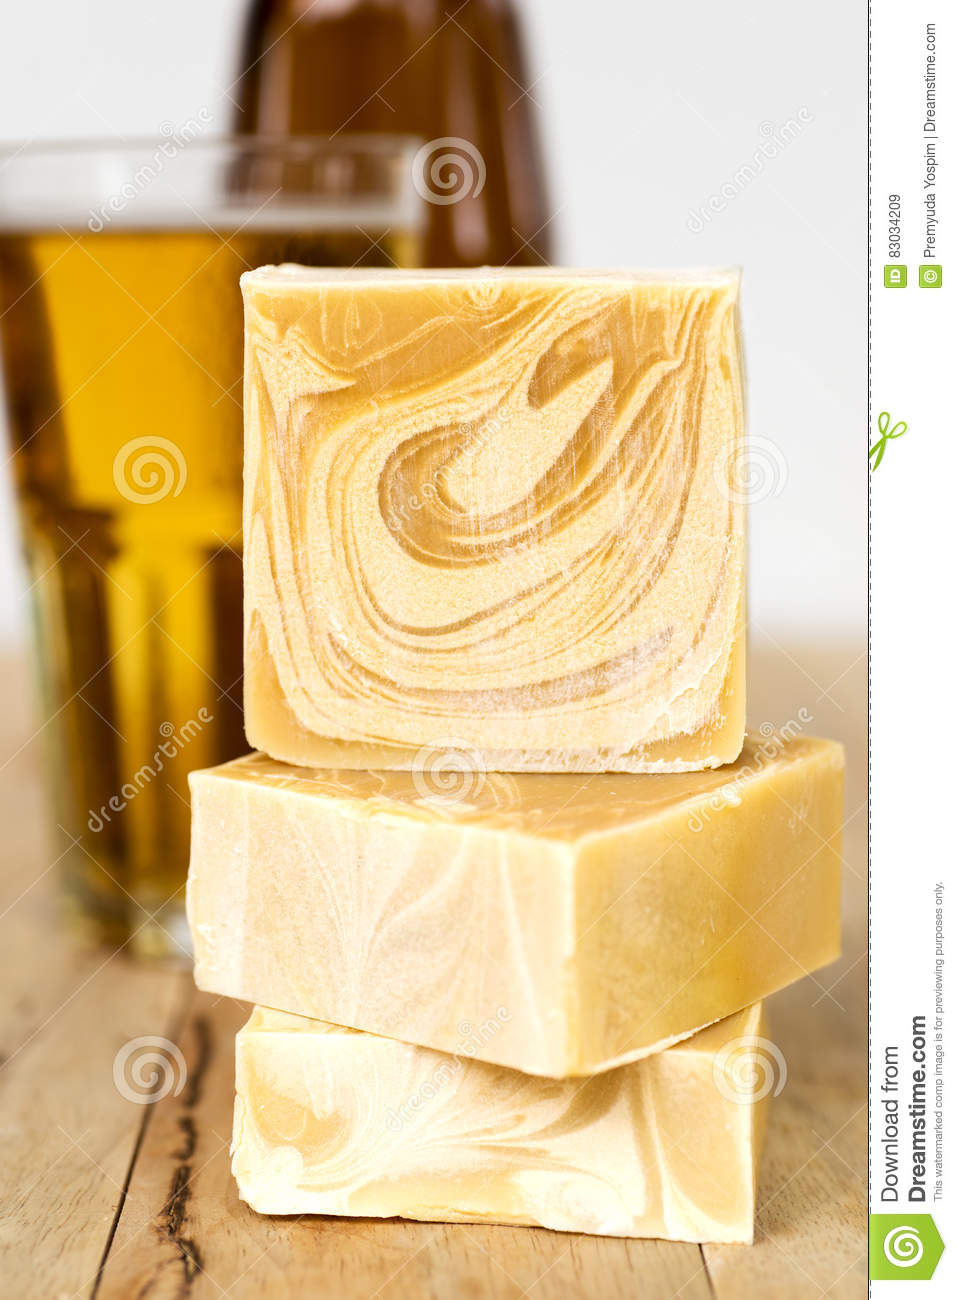 Beer soaps, homemade natural cold process soap